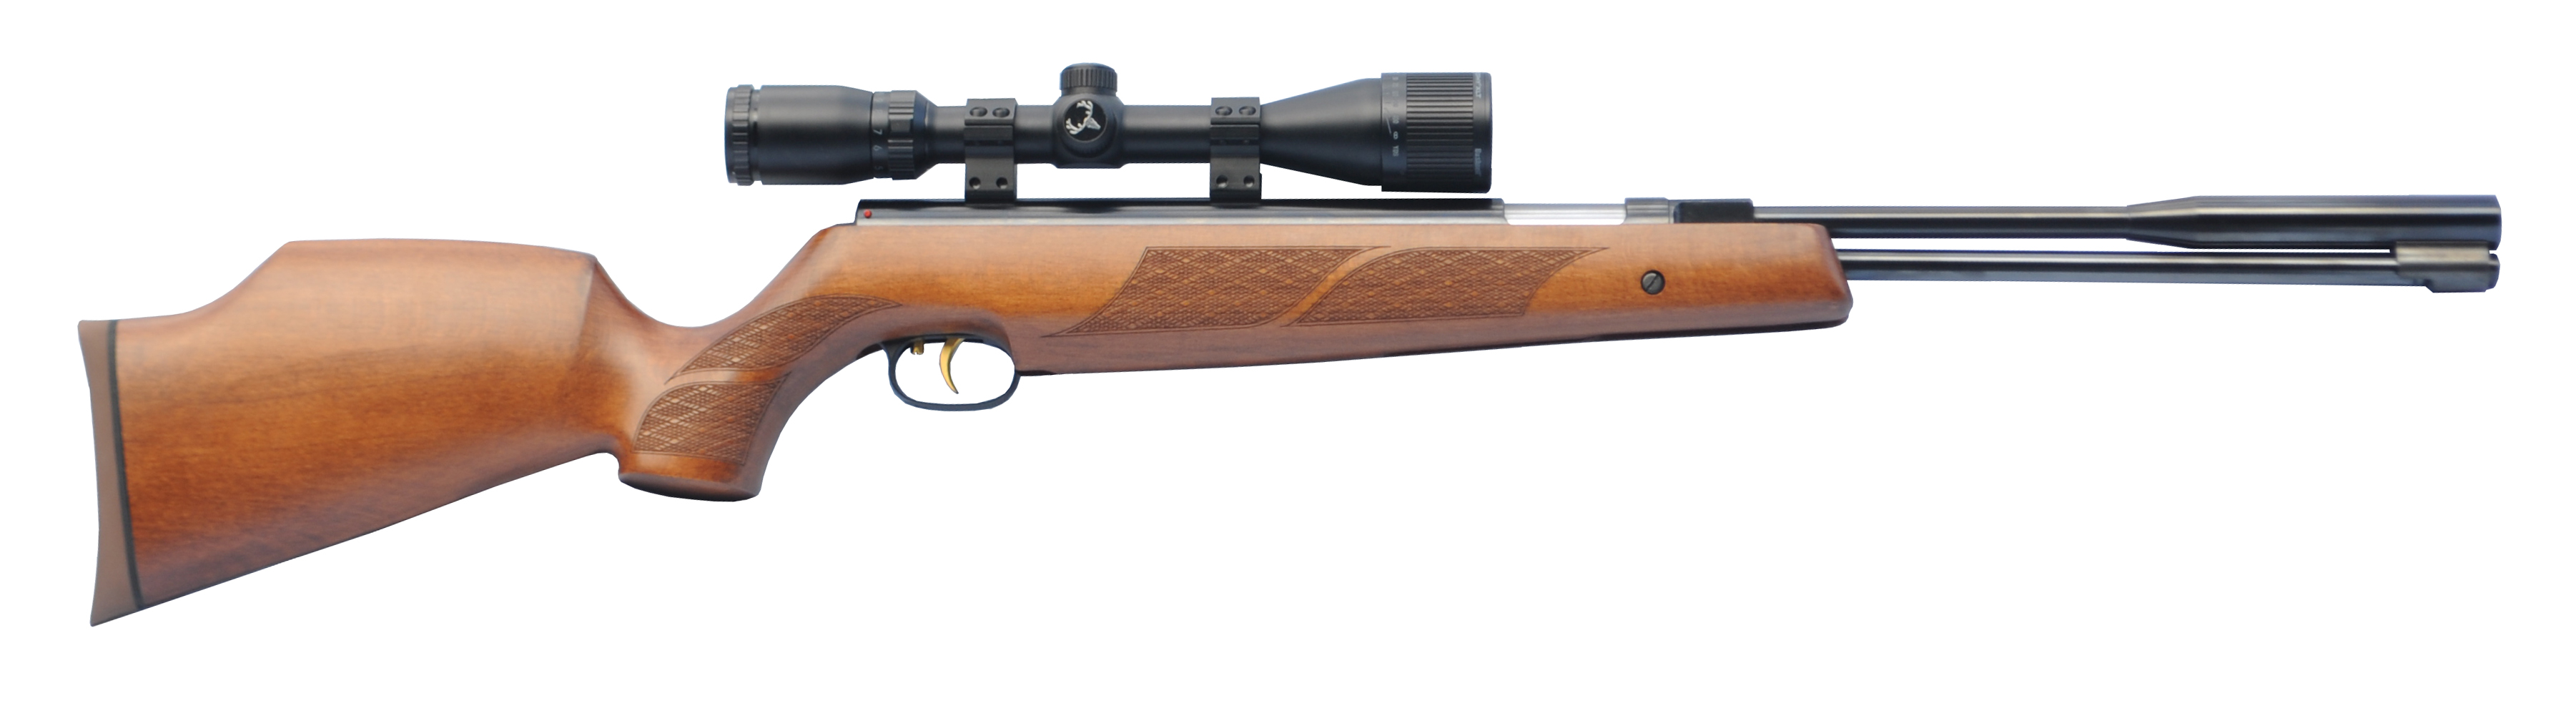 Optimising Your Air Rifle